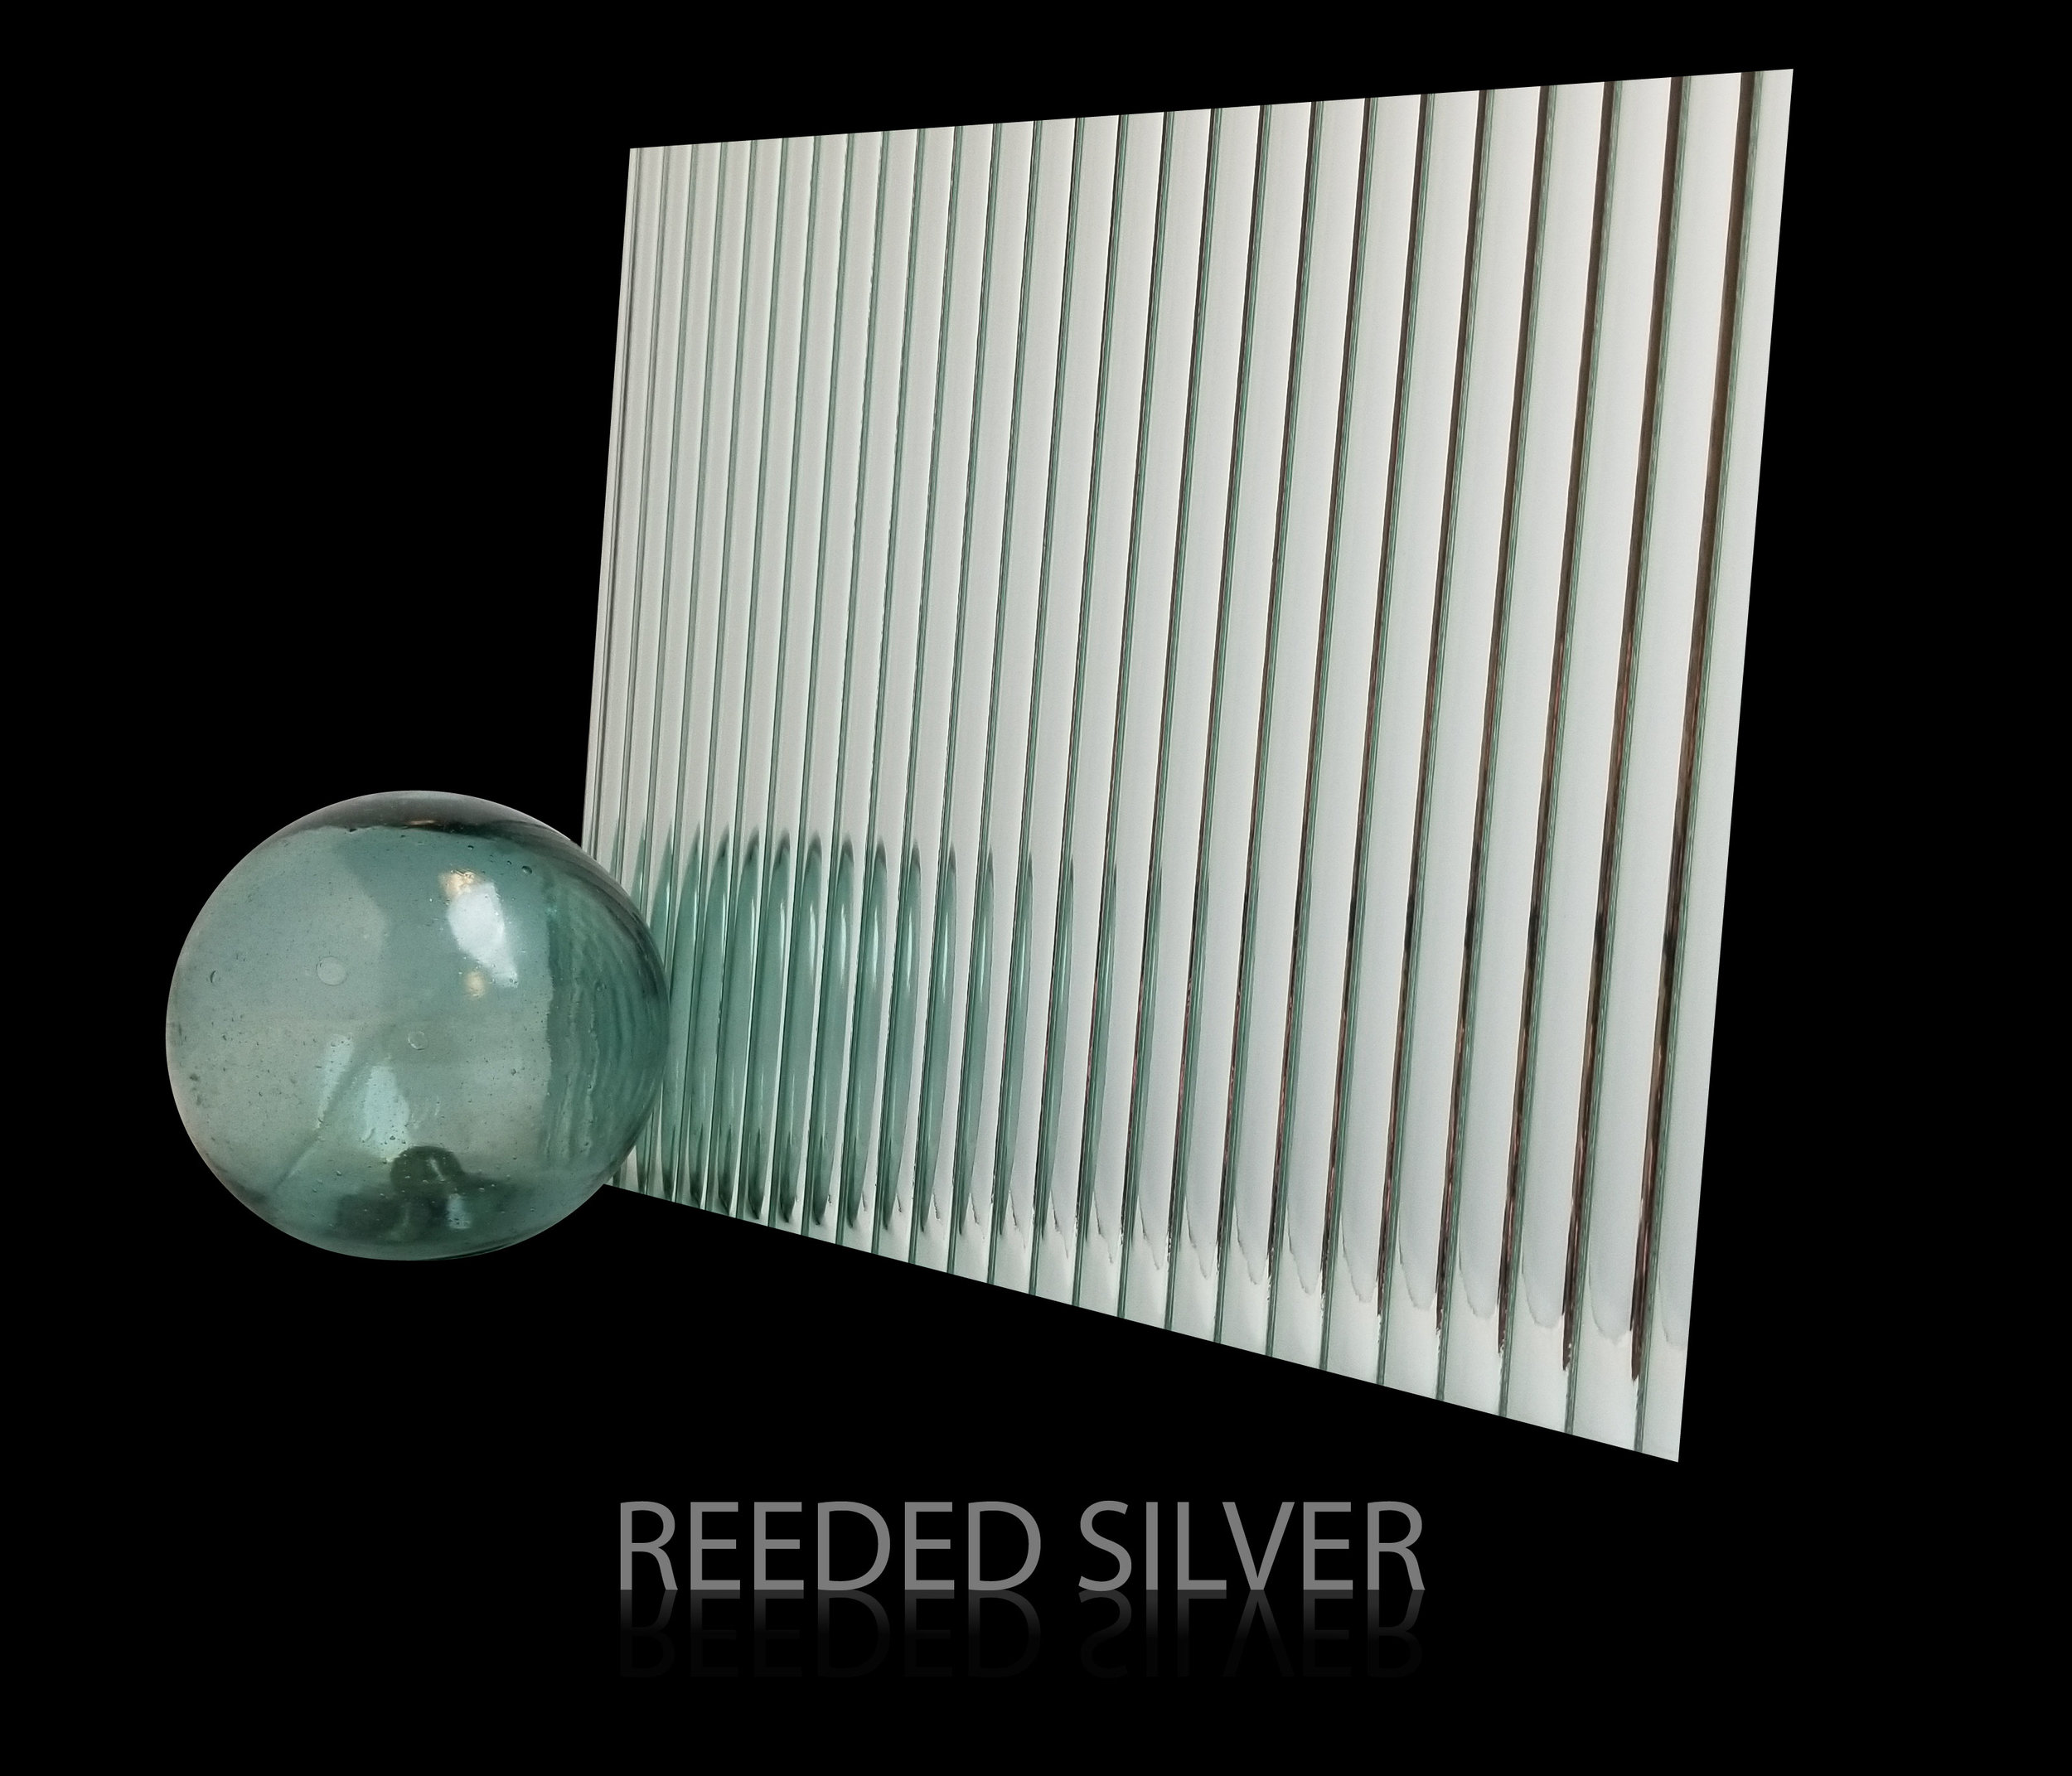 Reeded Silver (Vertical).jpg